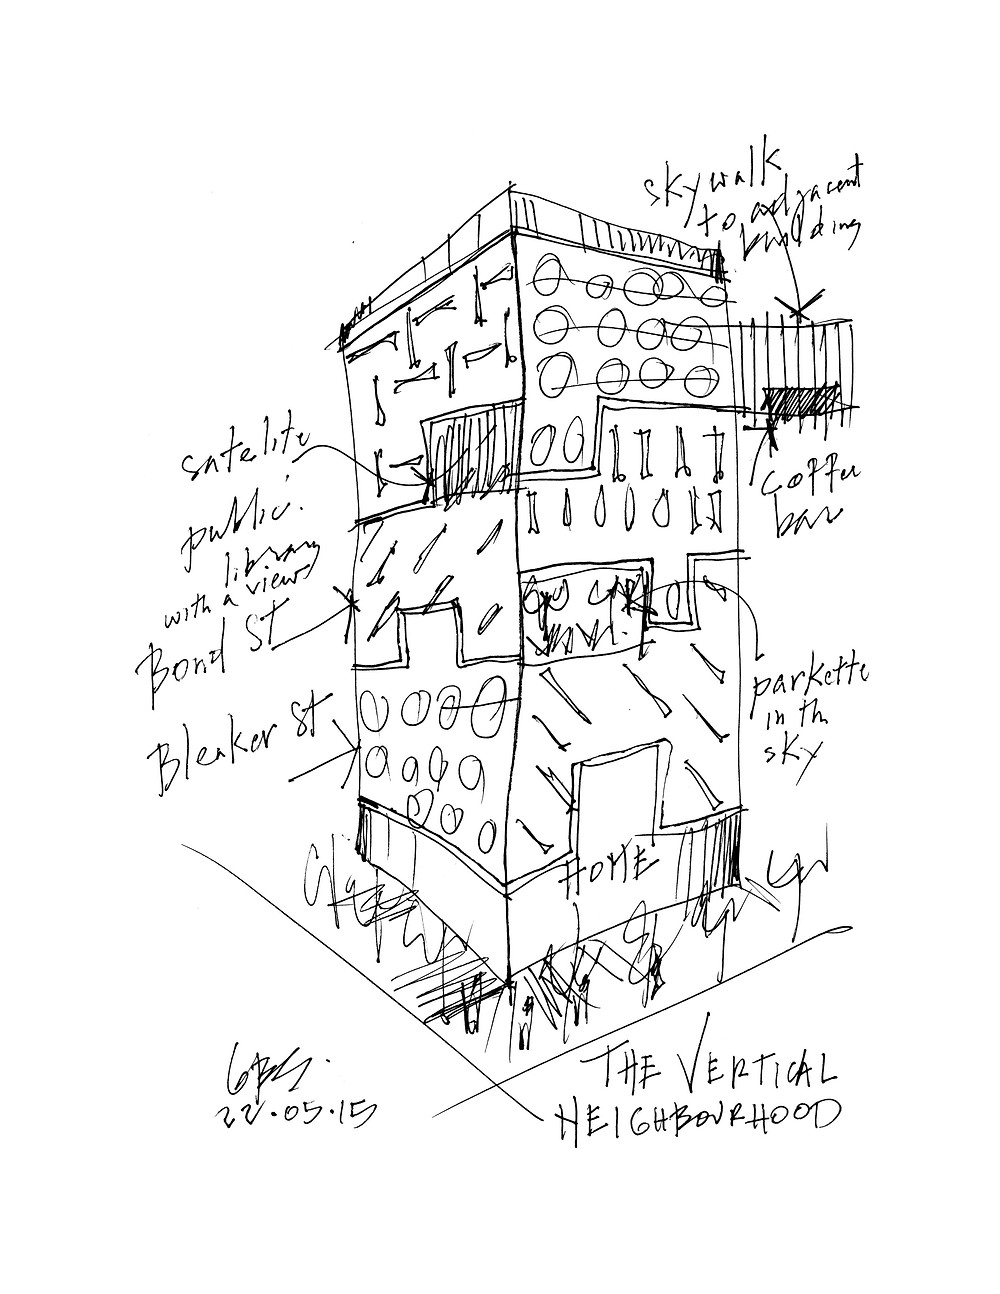 vertical neighbourhood sketch.jpg